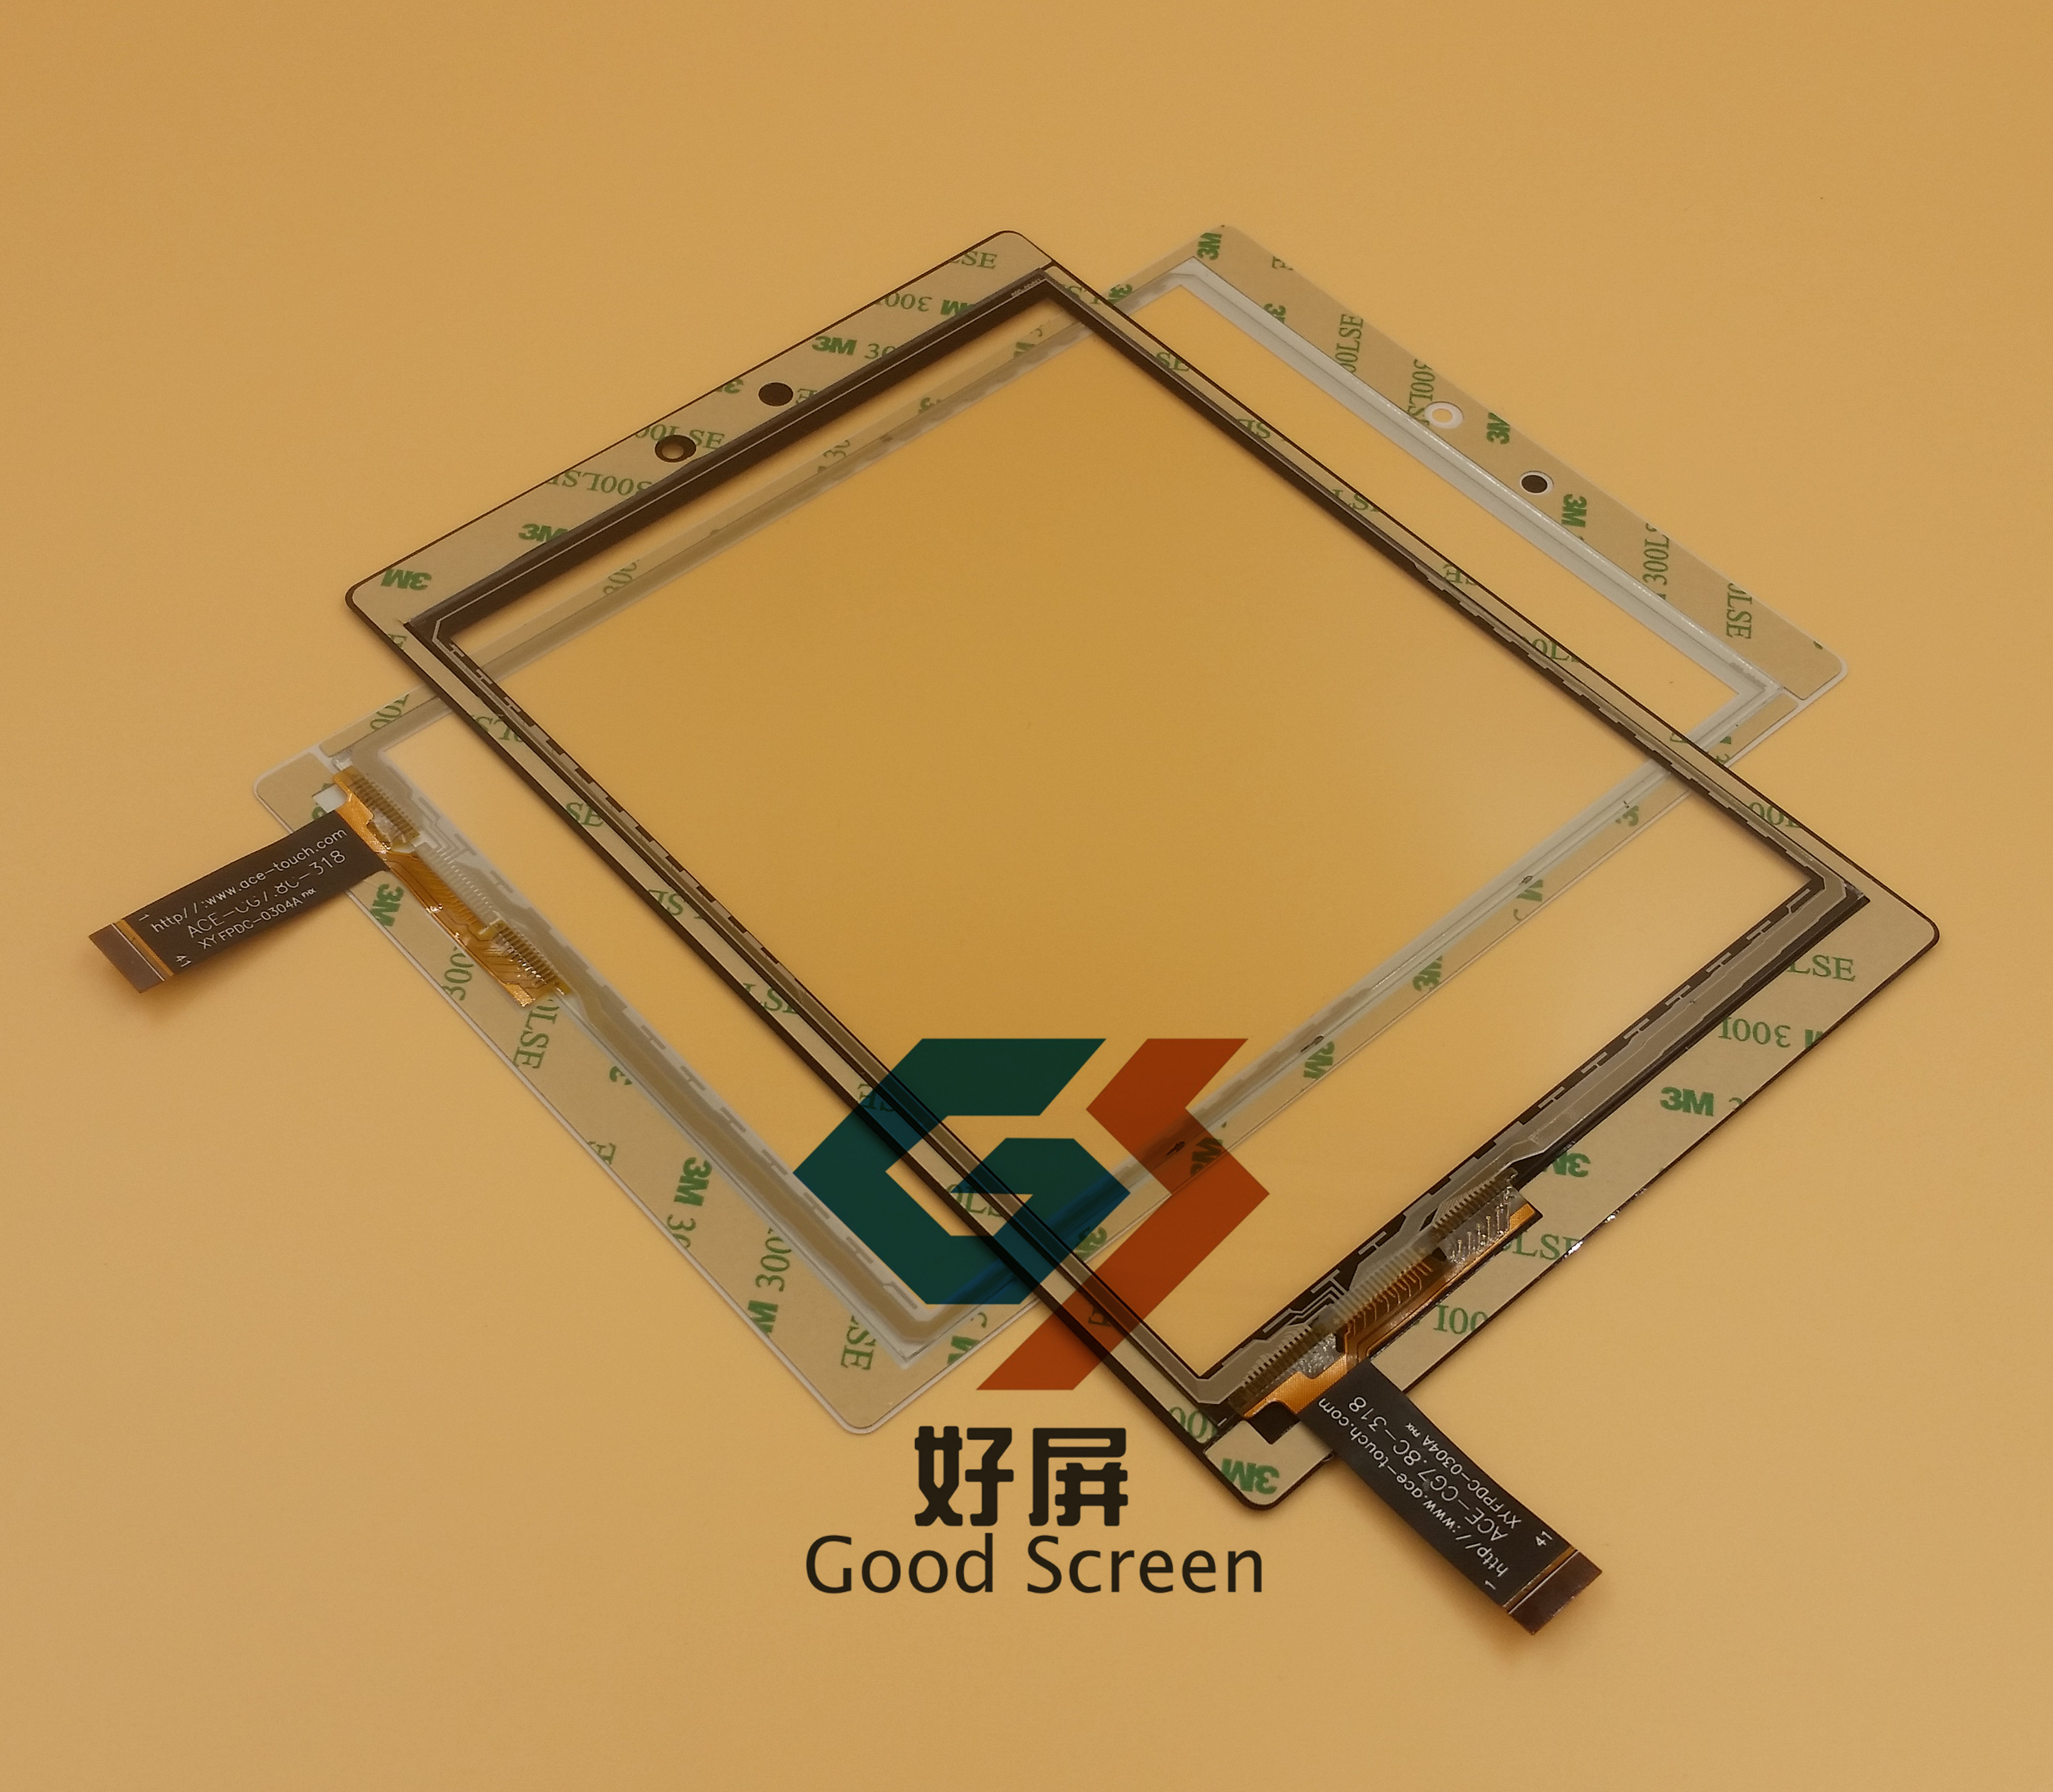 ACE-CG7.8C-318 XY FPDC-0304A ACE-CG7.8C-318-FPC 7.85 inch PMT7077_3G P Tablet PC touch screen panel glass digitizer